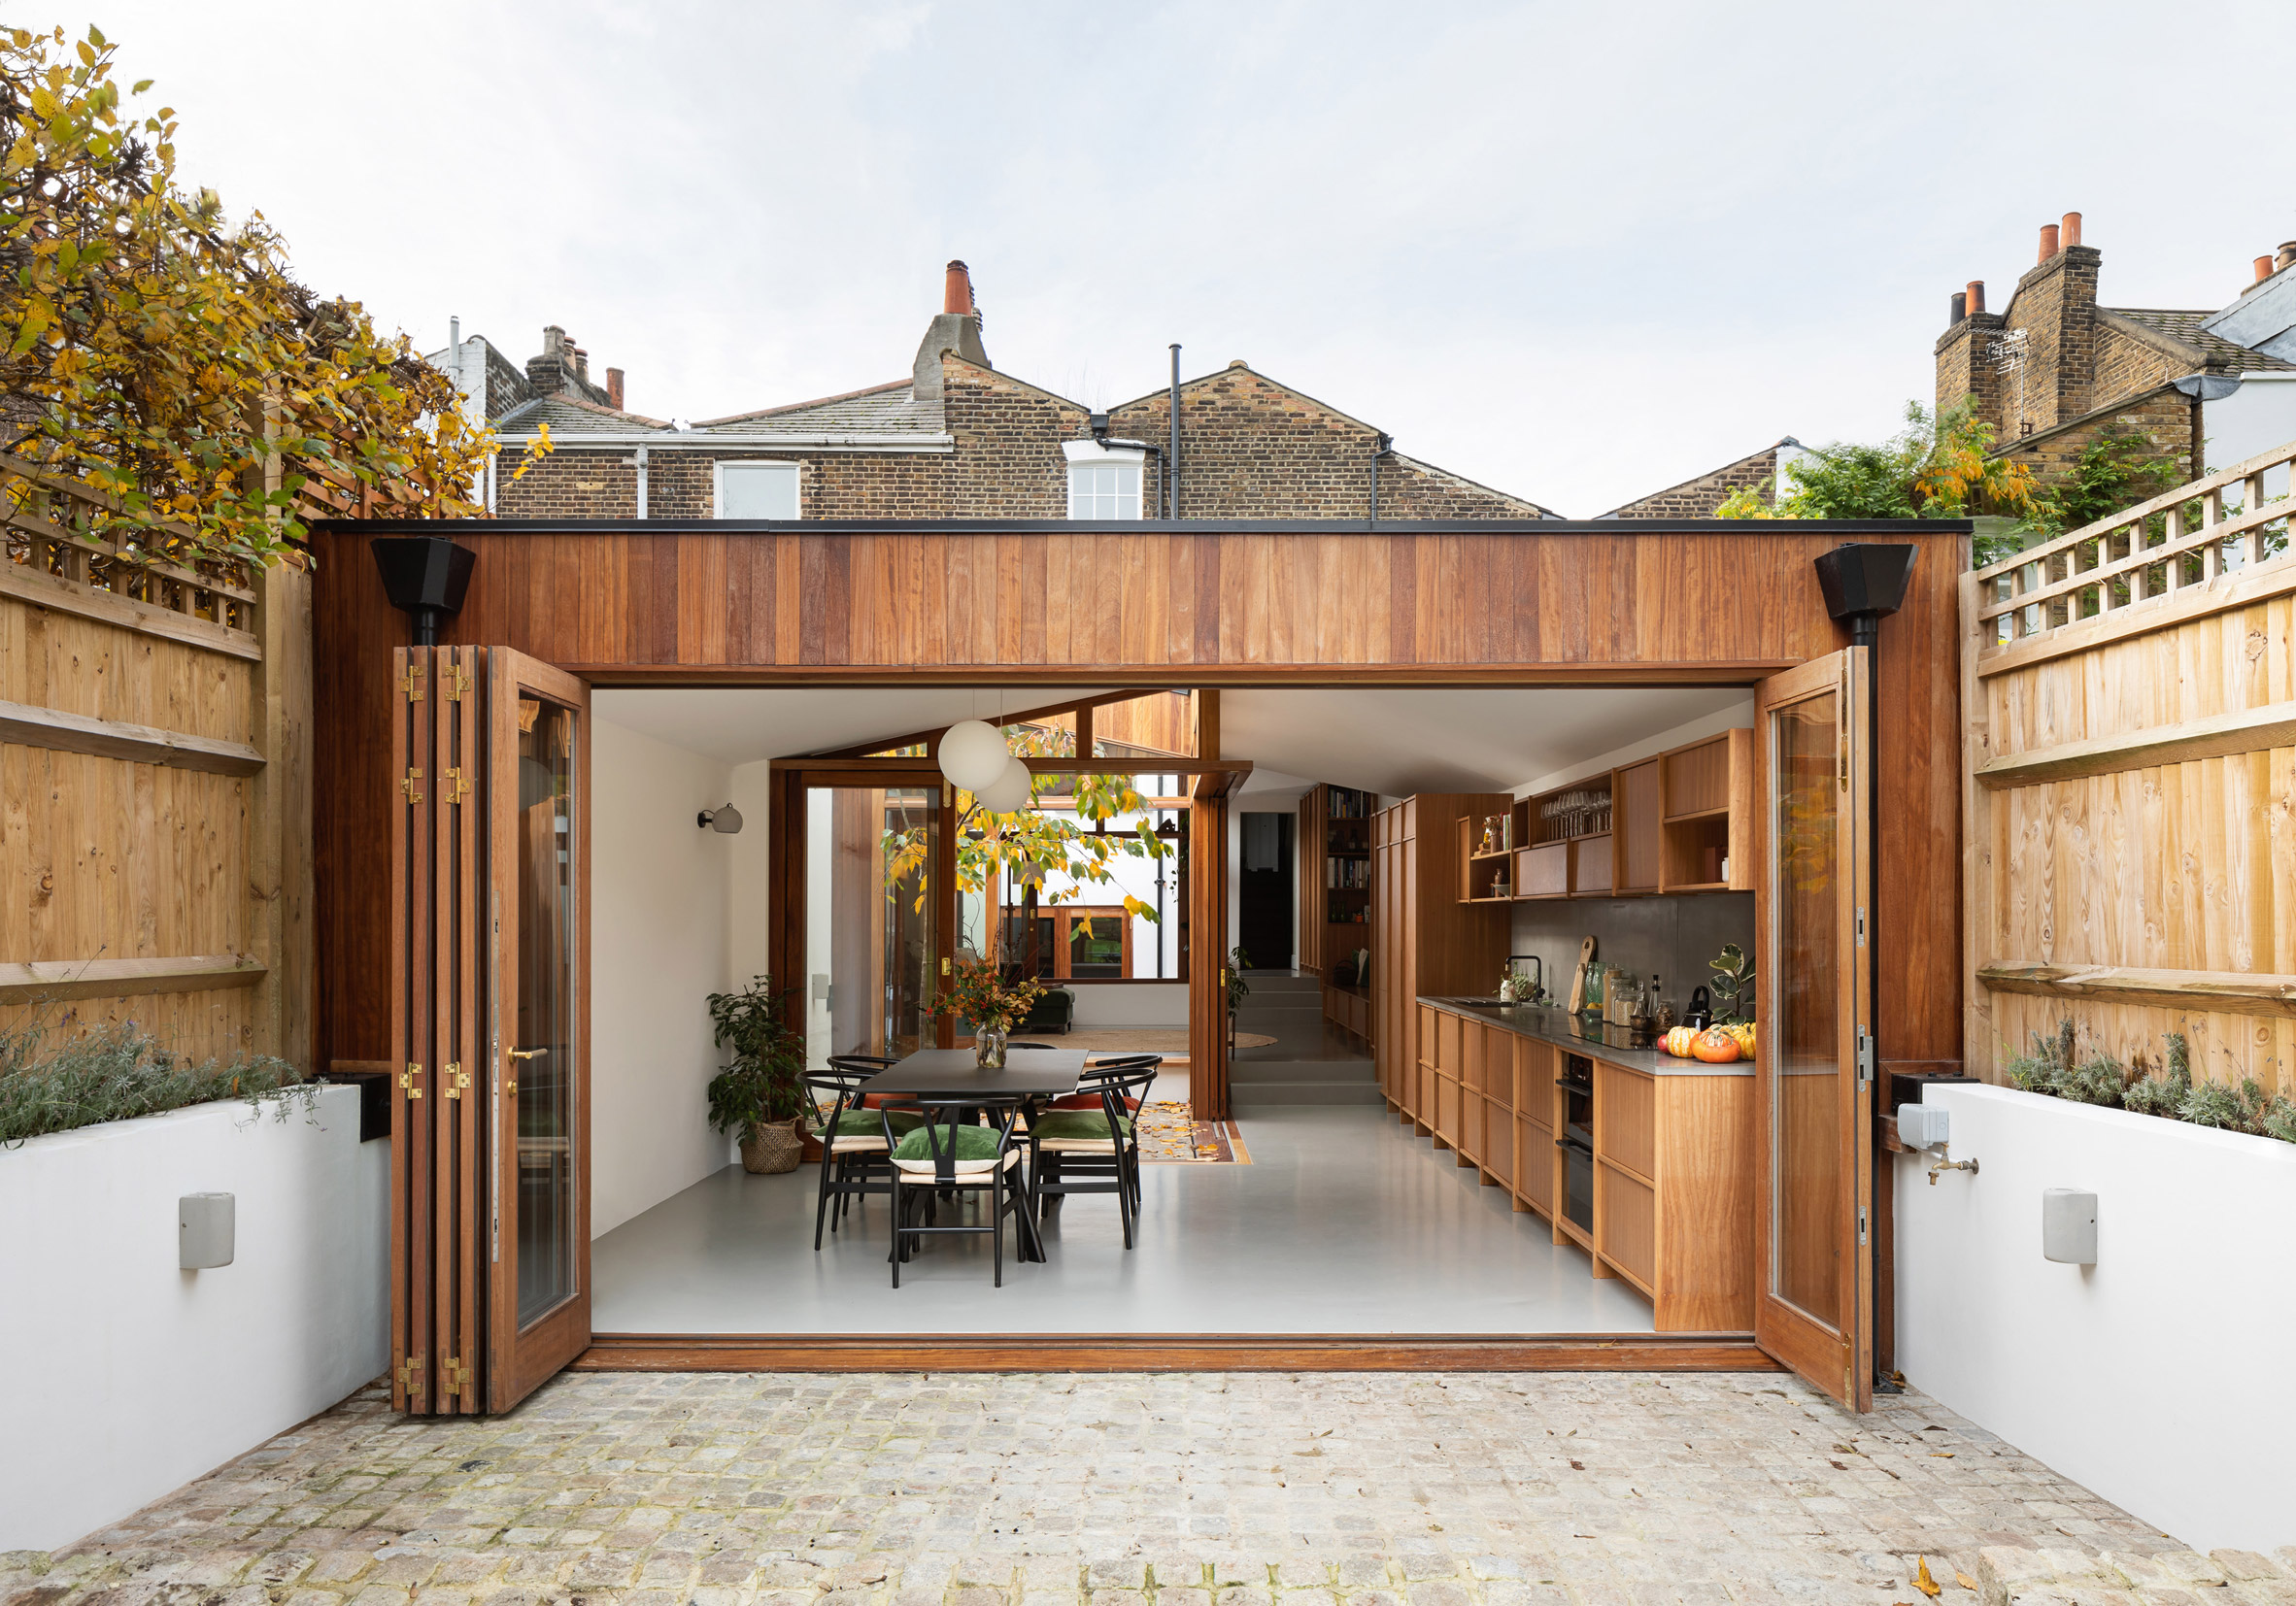 The wood-clad extension of A Cloistered House